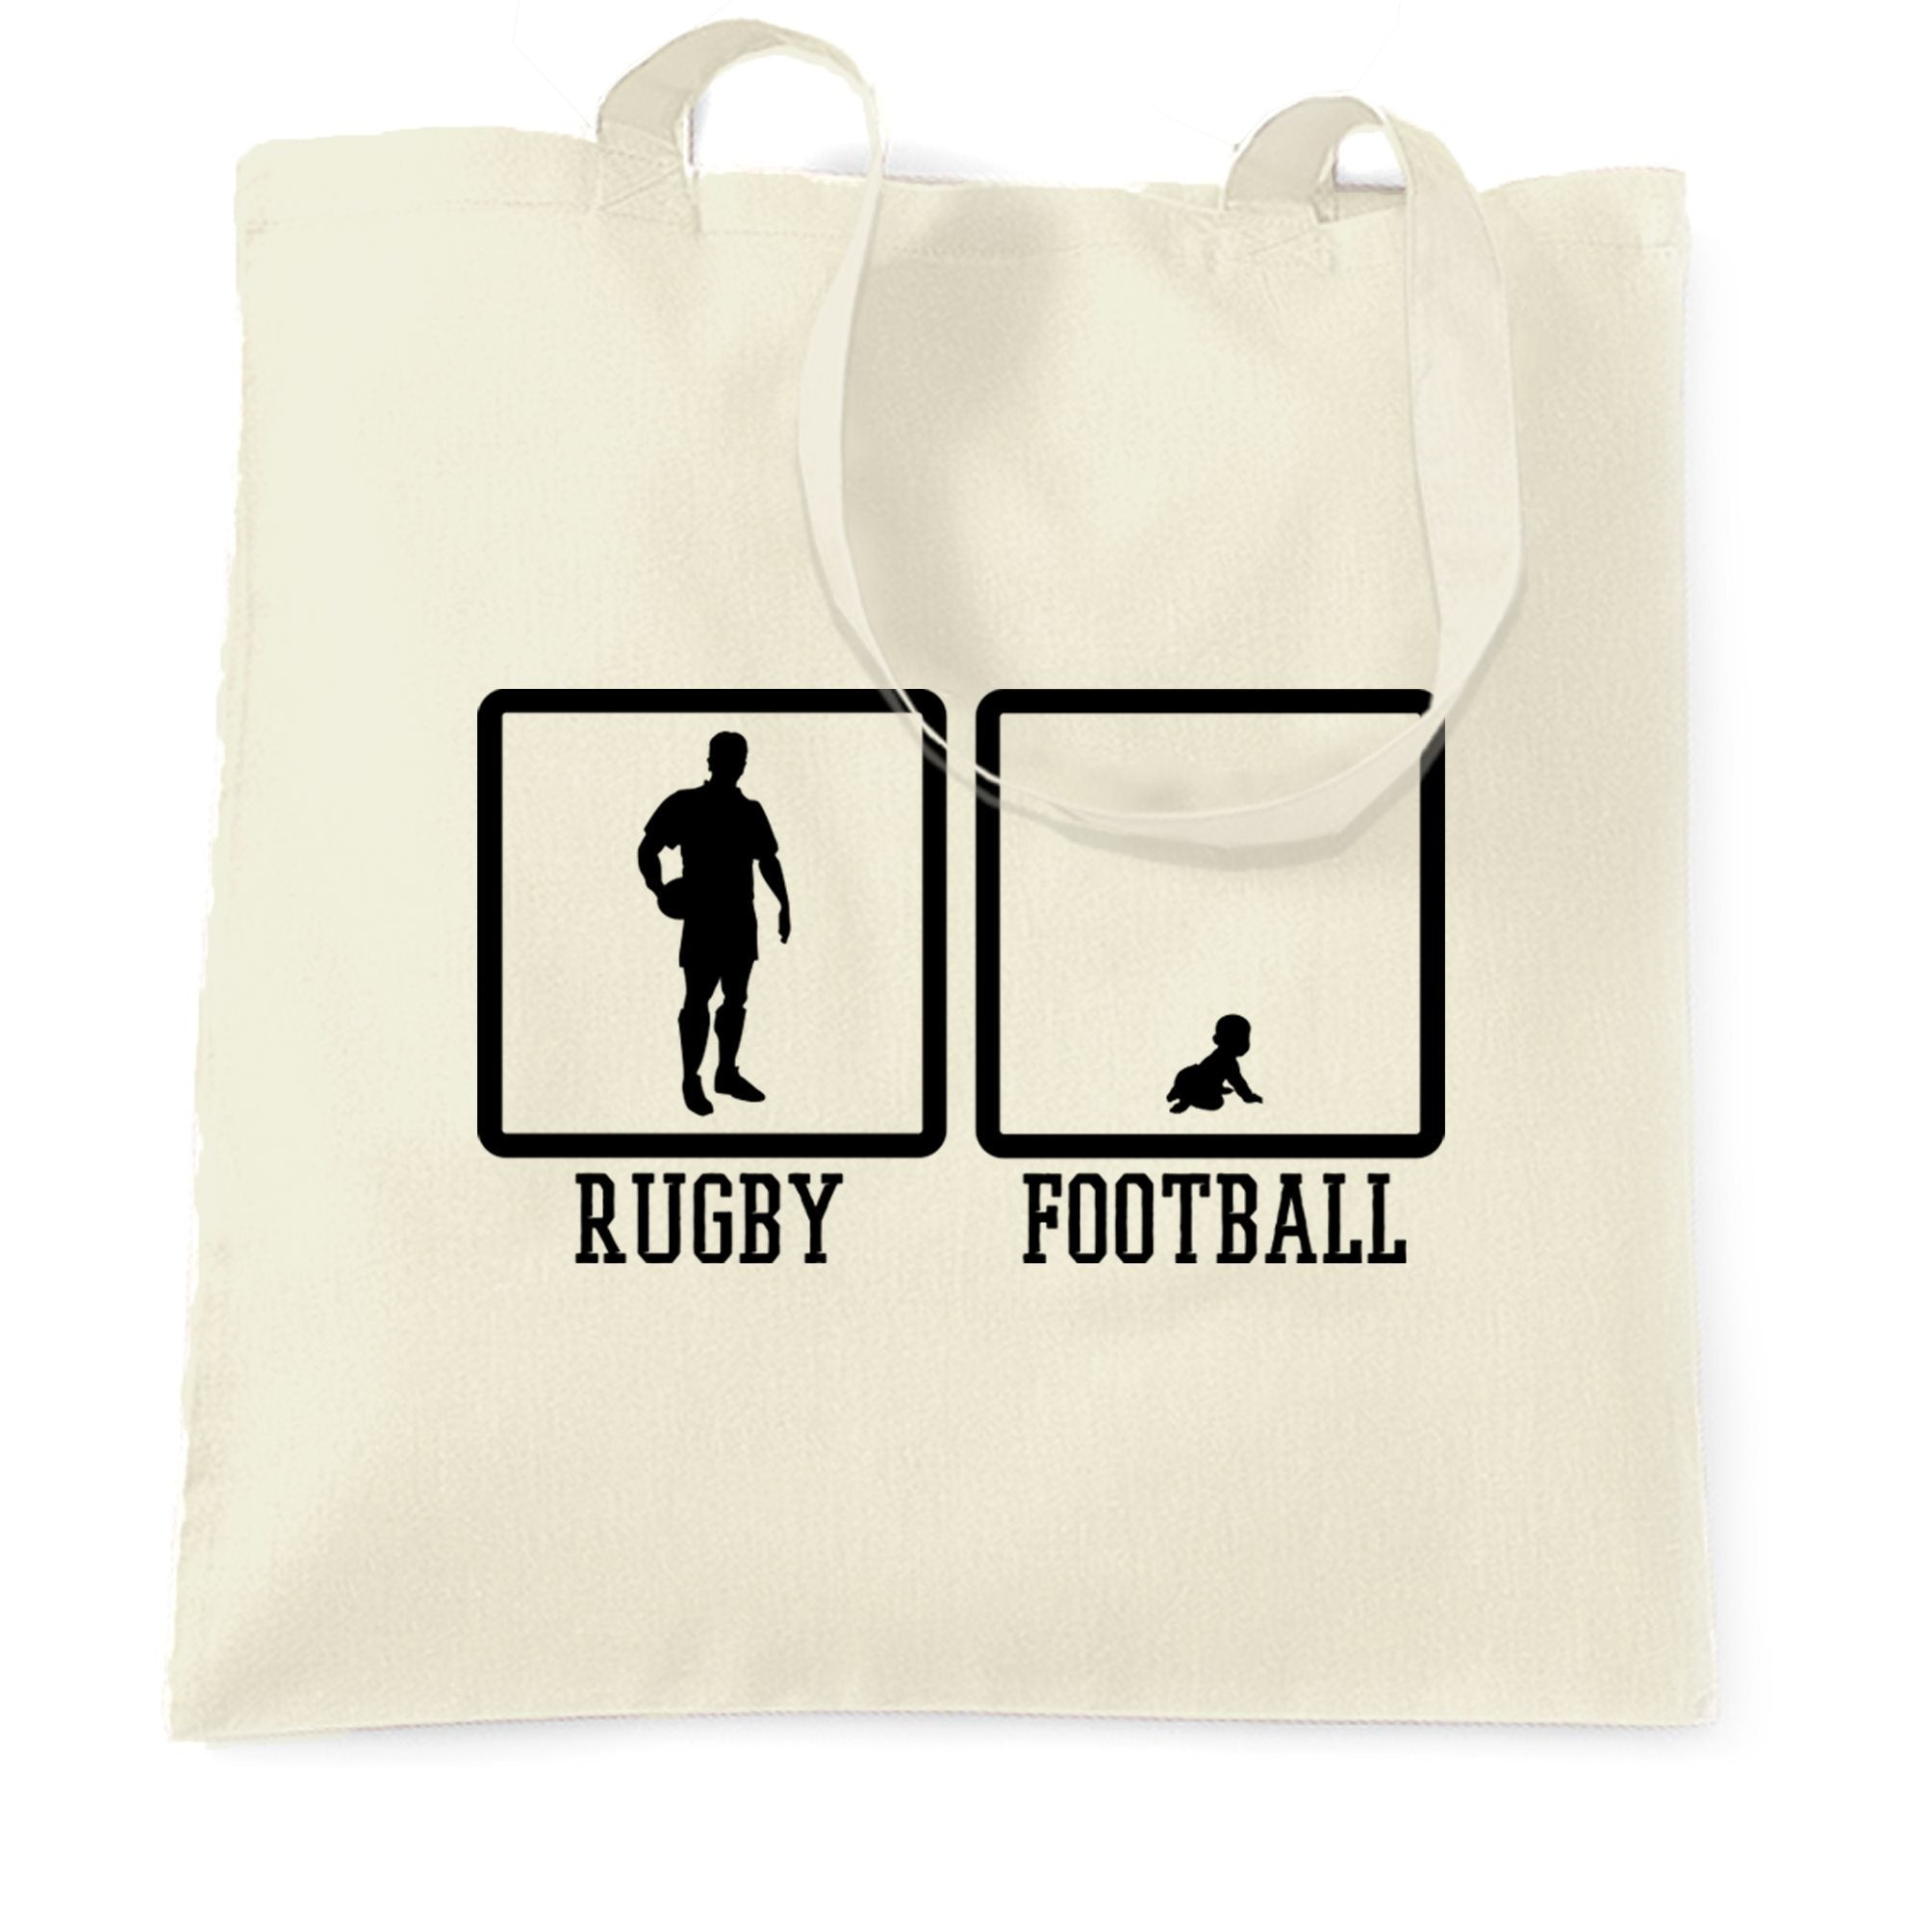 Joke Sports Tote Bag Rugby Vs Football Baby Novelty